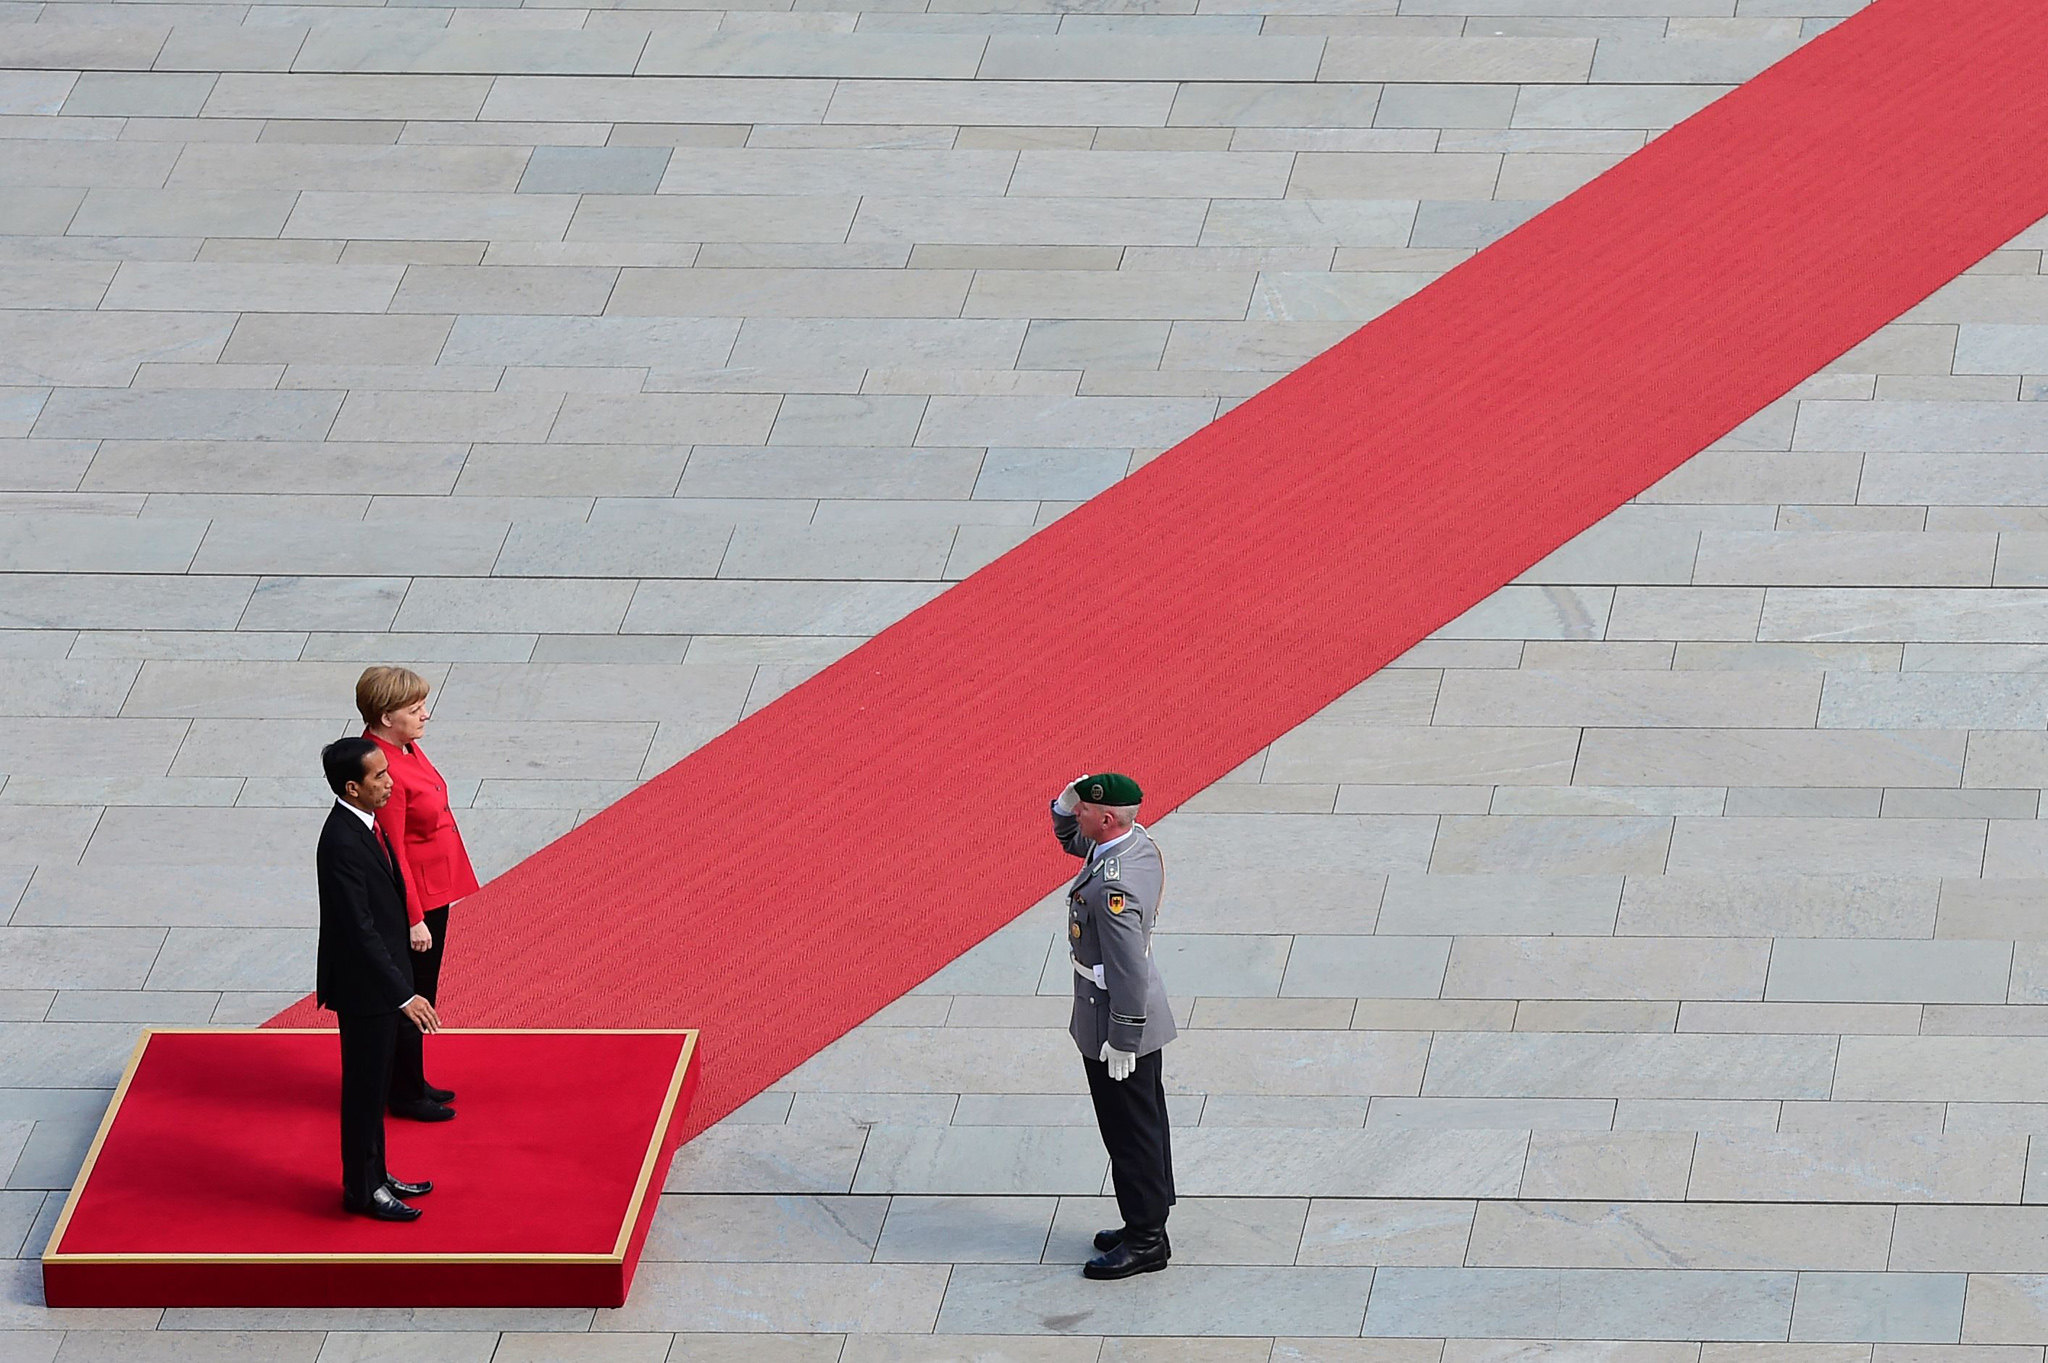 German Chancellor Angela Merkel (R) and ...German Chancellor Angela Merkel (R) and Indonesian President Joko Widodo inspect a military honor guard on April 18, 2016 before talks at the Chancellery in Berlin.